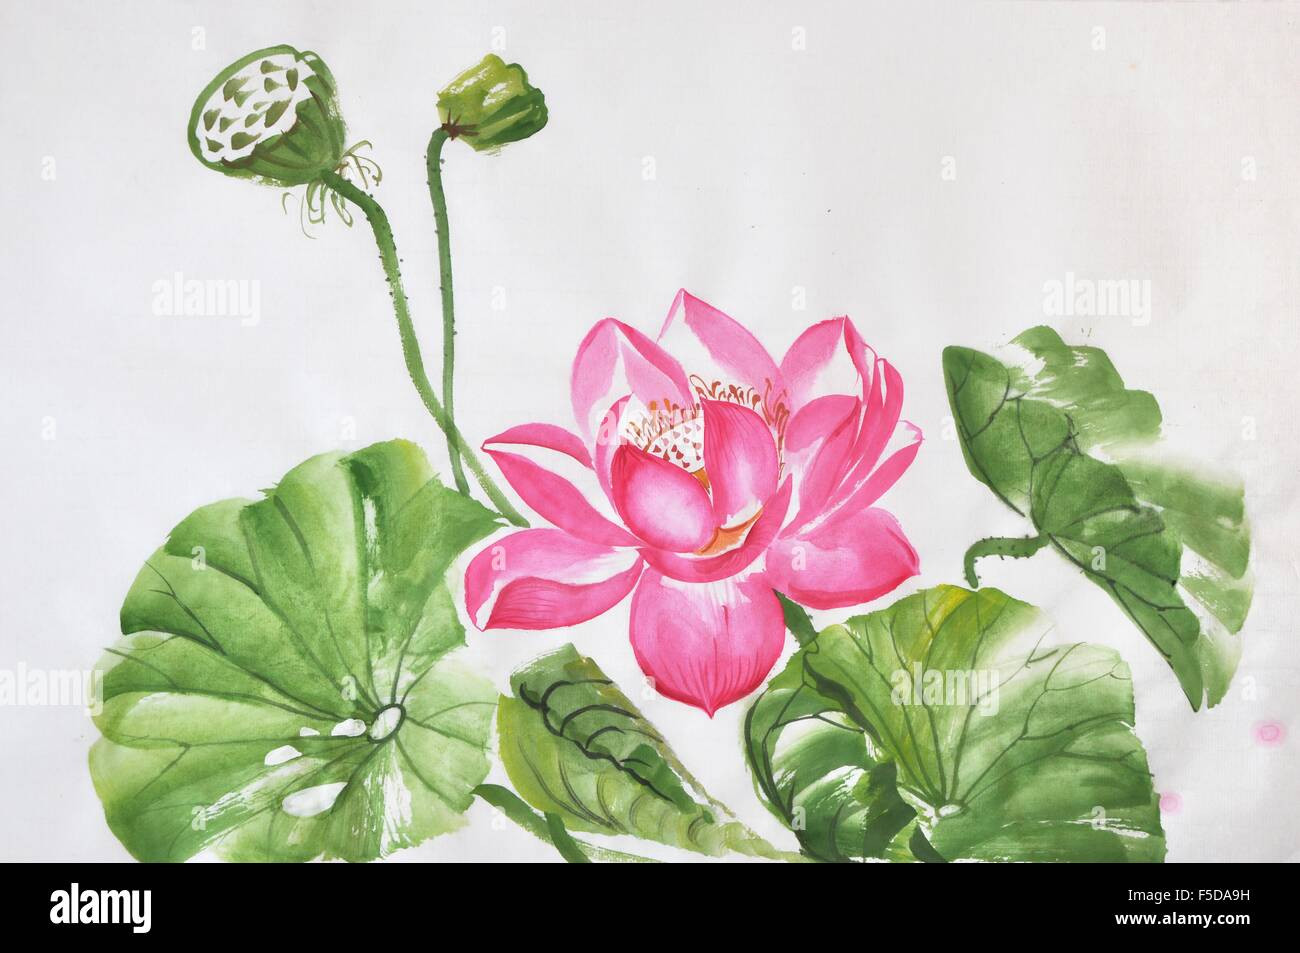 Lotus flower watercolor painting on a rice paper original art lotus flower watercolor painting on a rice paper original art asian style izmirmasajfo